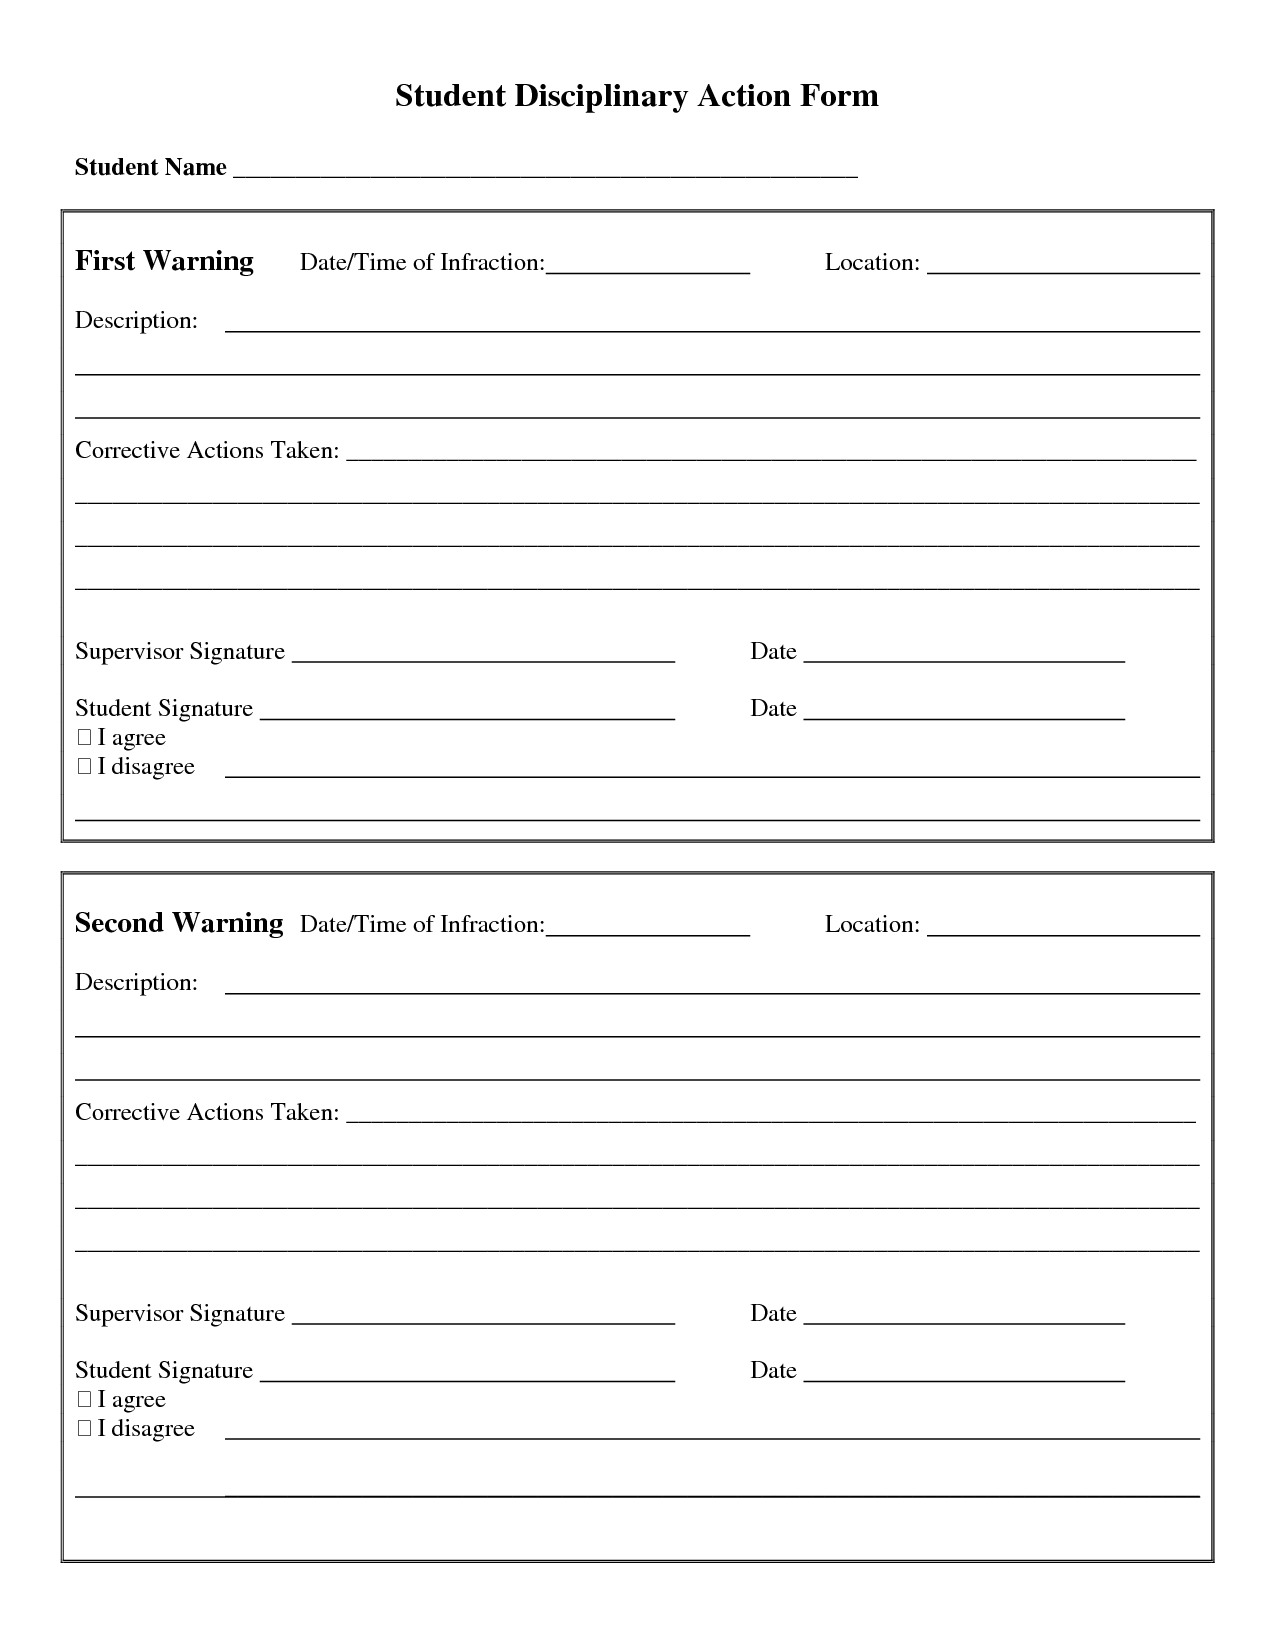 Student Discipline Form  Google Search  Classroom